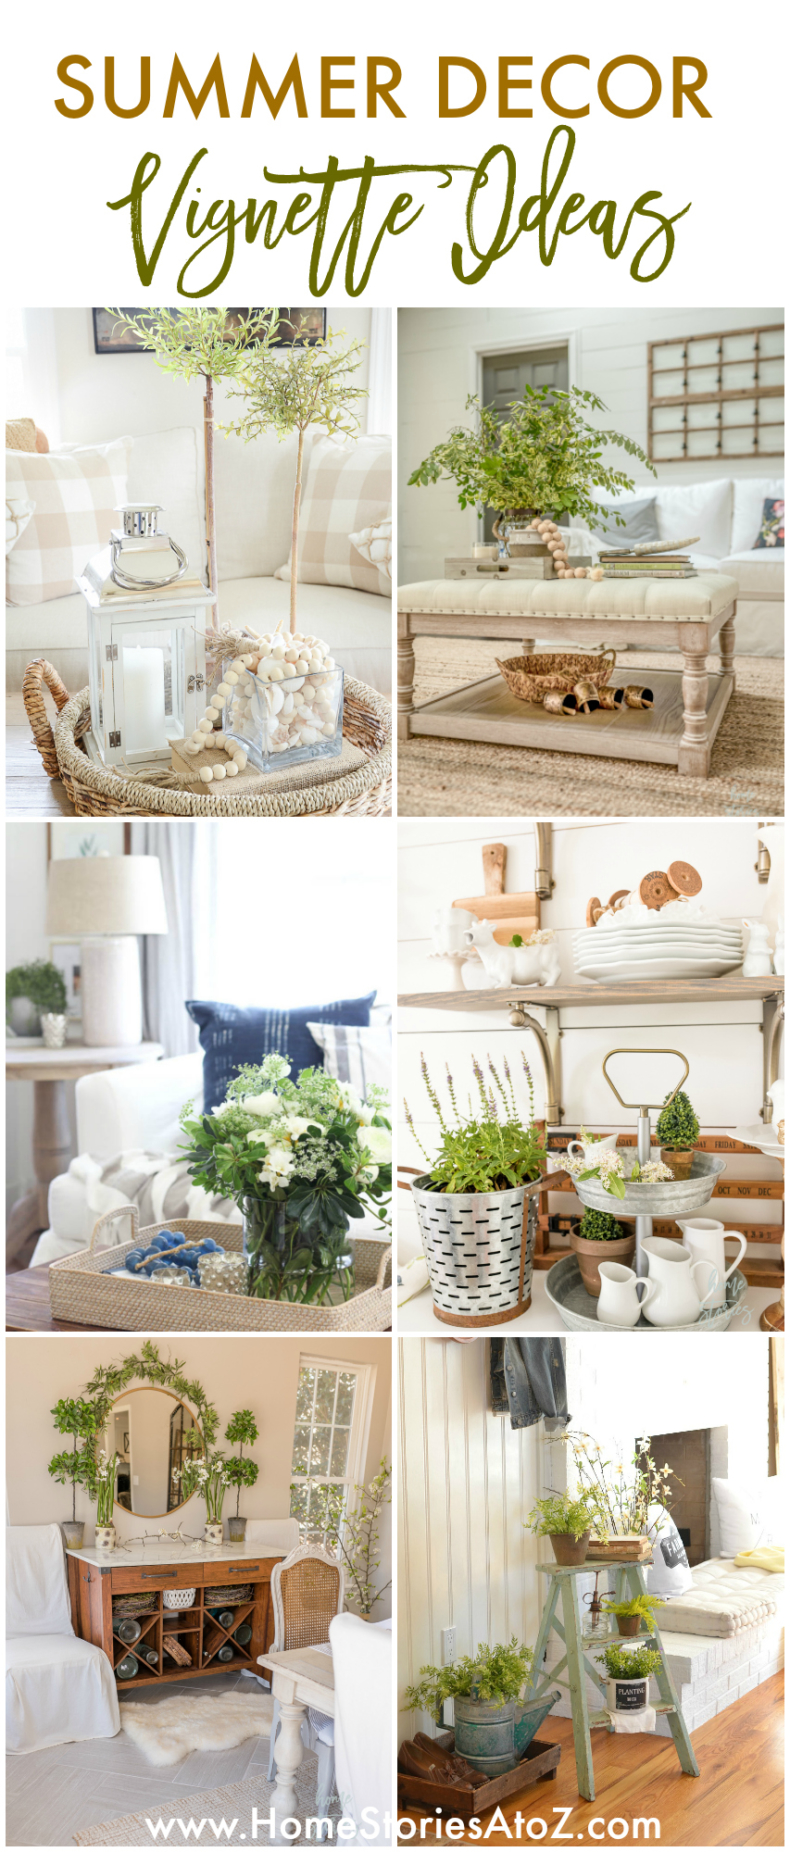 Summer Decor Ideas - Summer Vignettes and Tiered Tray Ideas